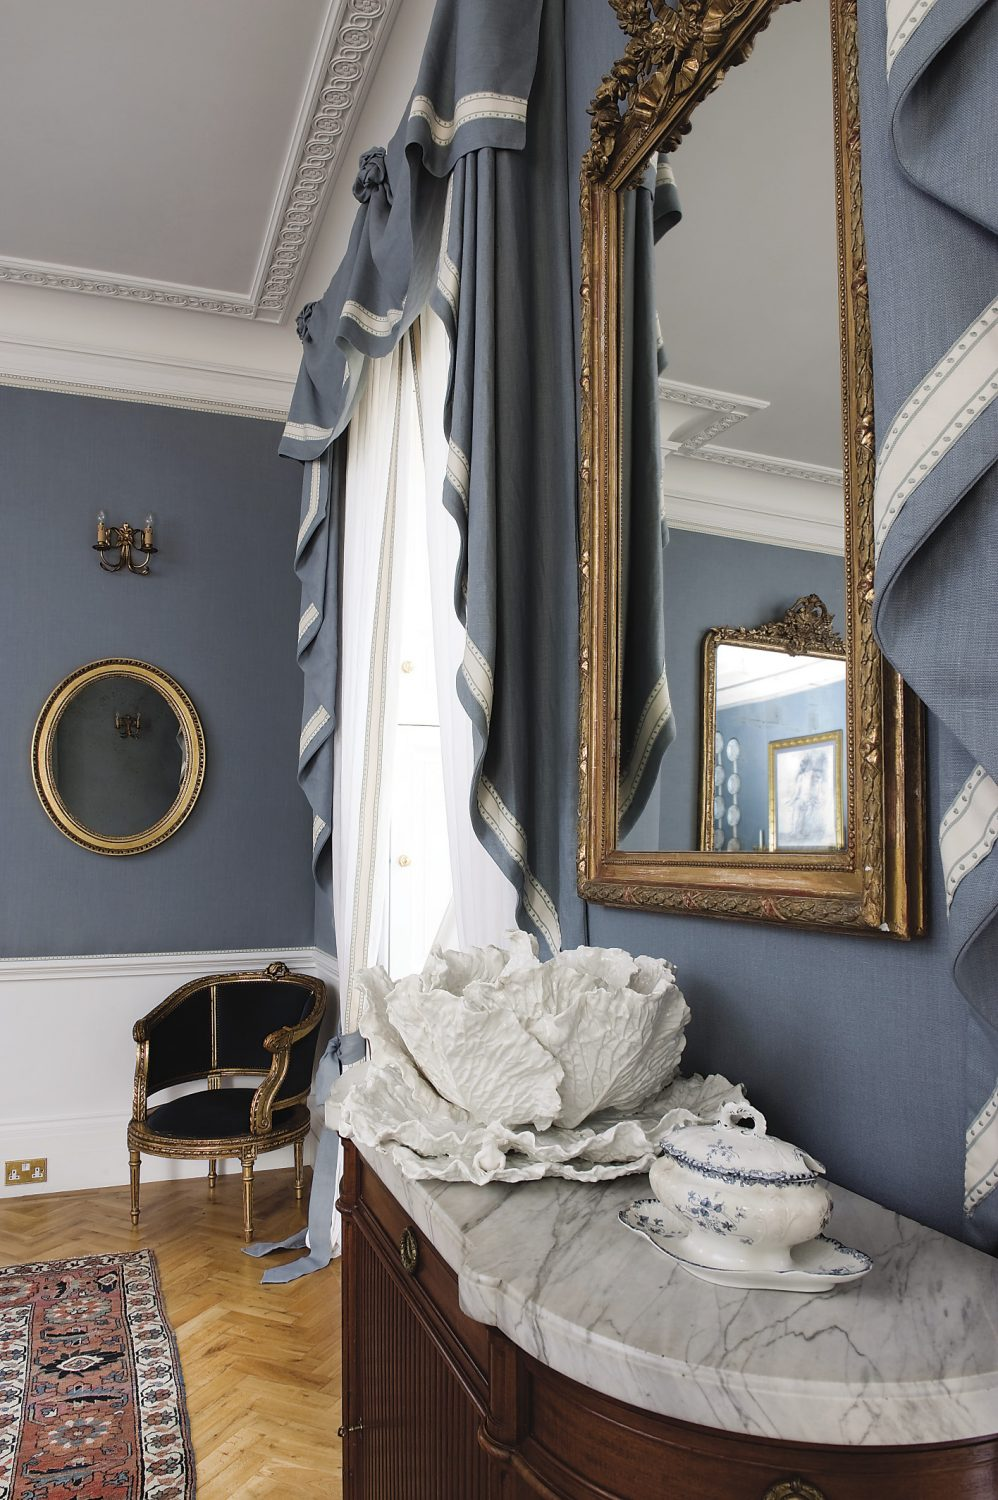 grey-blue linen from Libeco in Belgium covers the walls. The tureen in the shape of a giant cabbage with a snail on one leaf is from Astier de Villatte